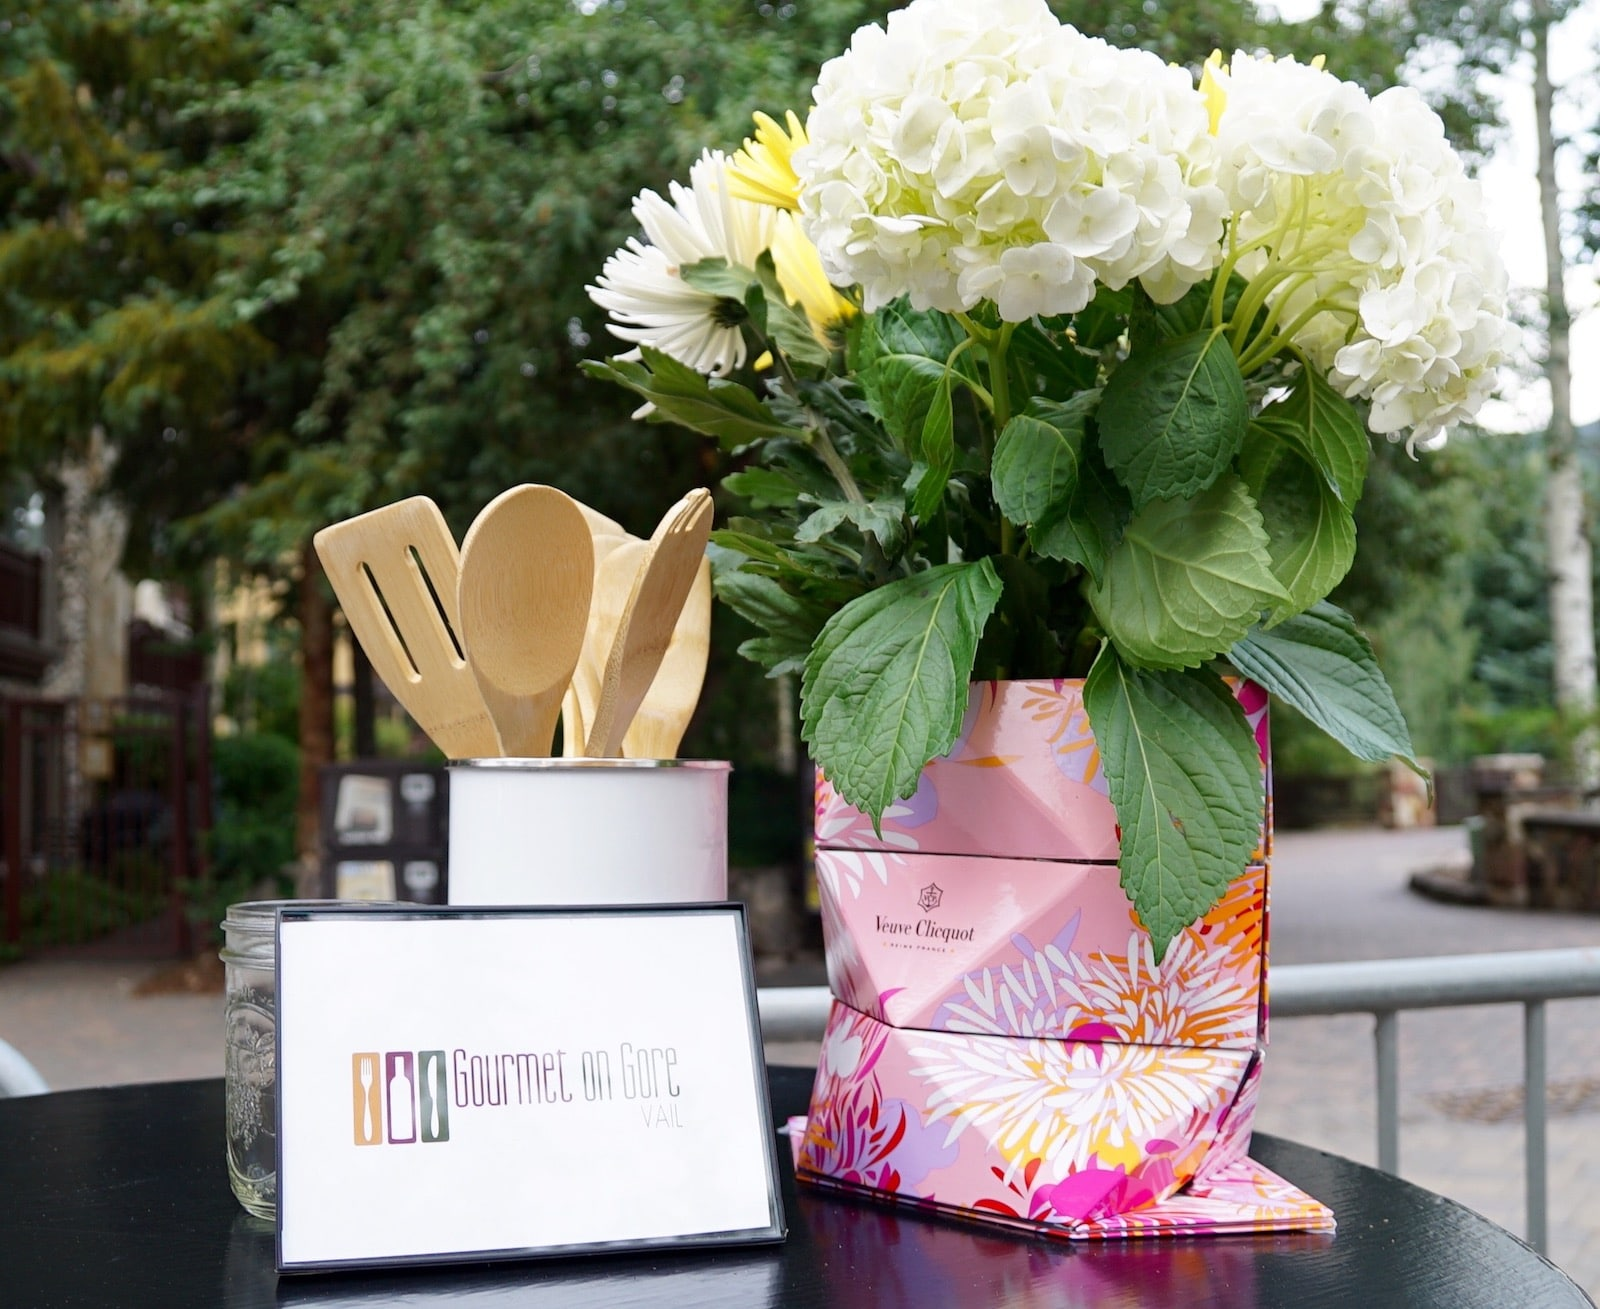 Image of flowers and a sign for Gourmet on Gore